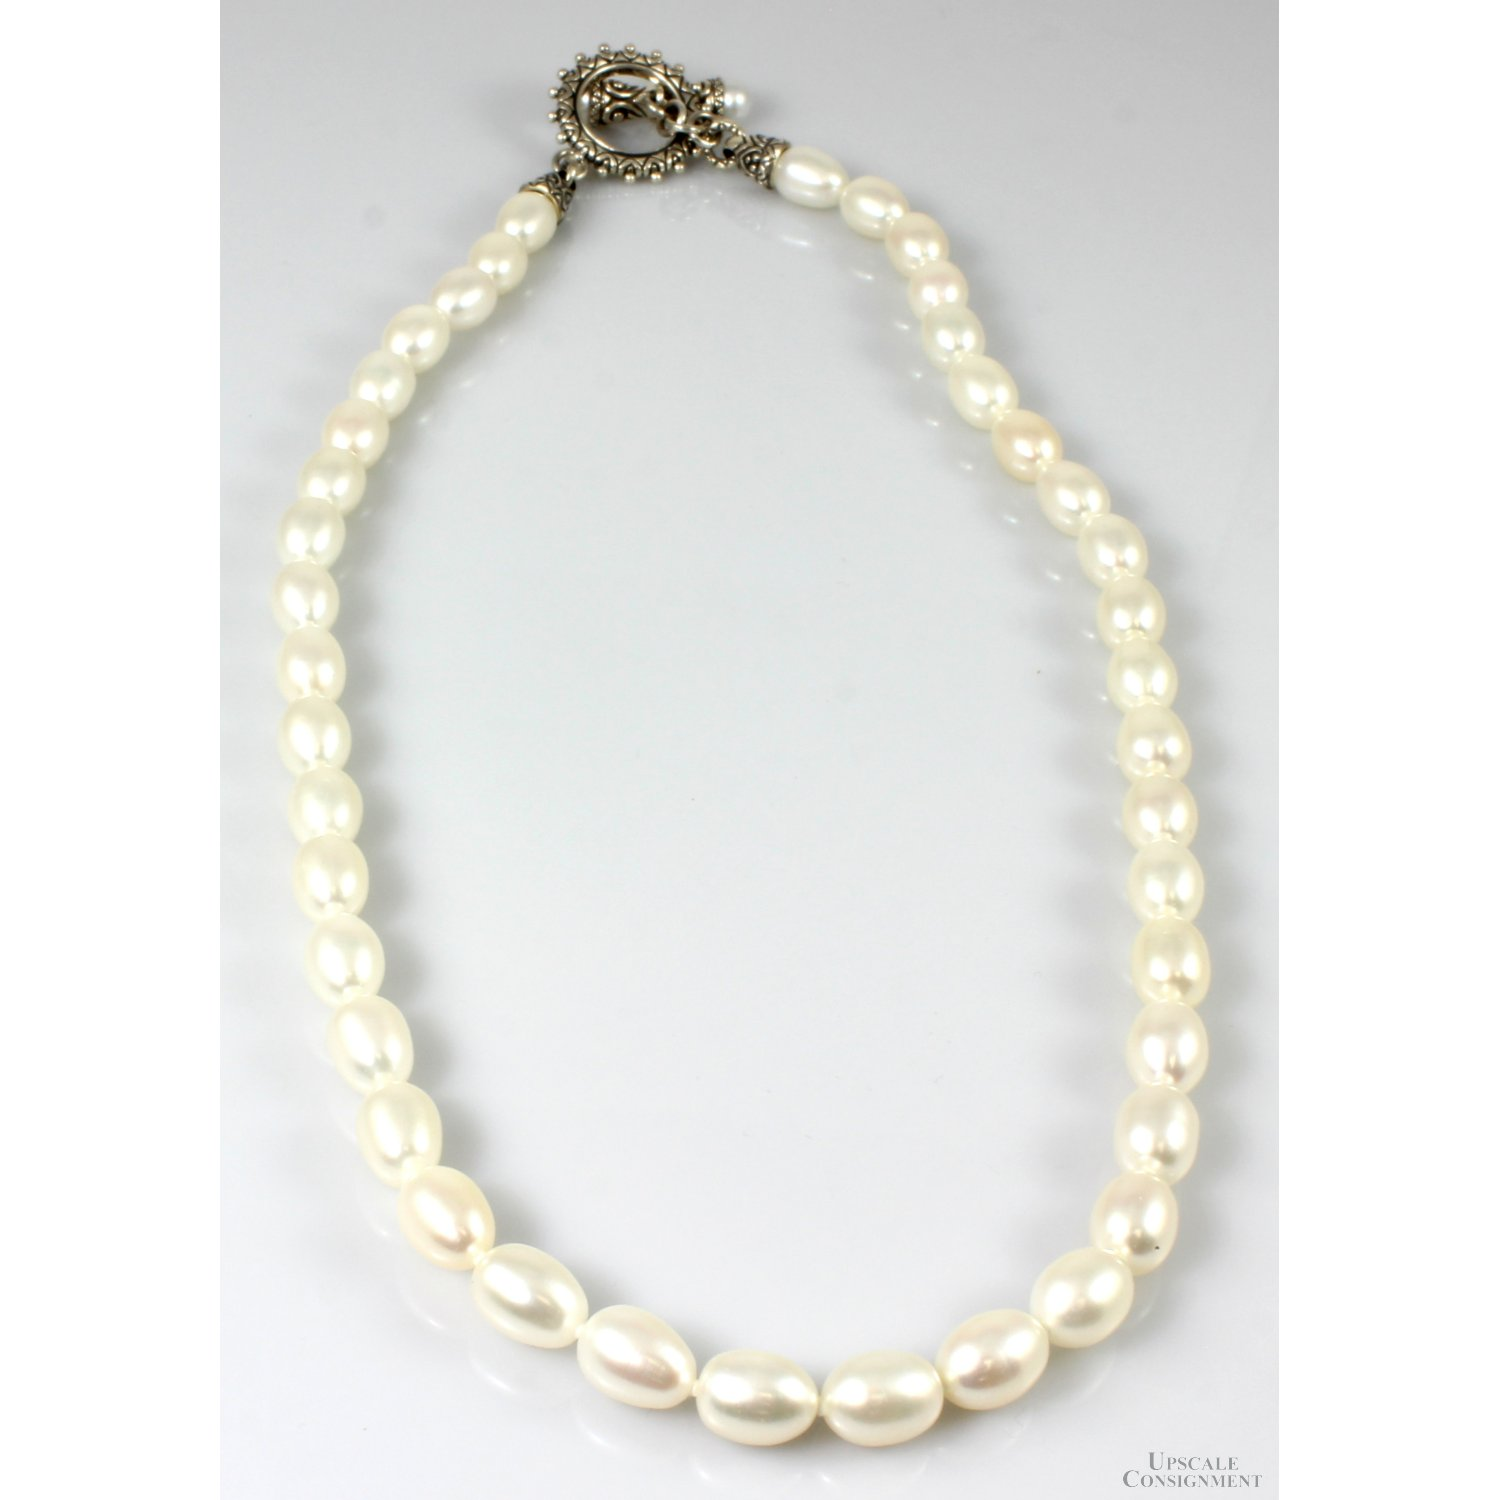 Bixby-Sterling-Silver--18K-Gold-6mm-Pearl-Necklace-wHonora-Toggle-Closure_89185A.jpg